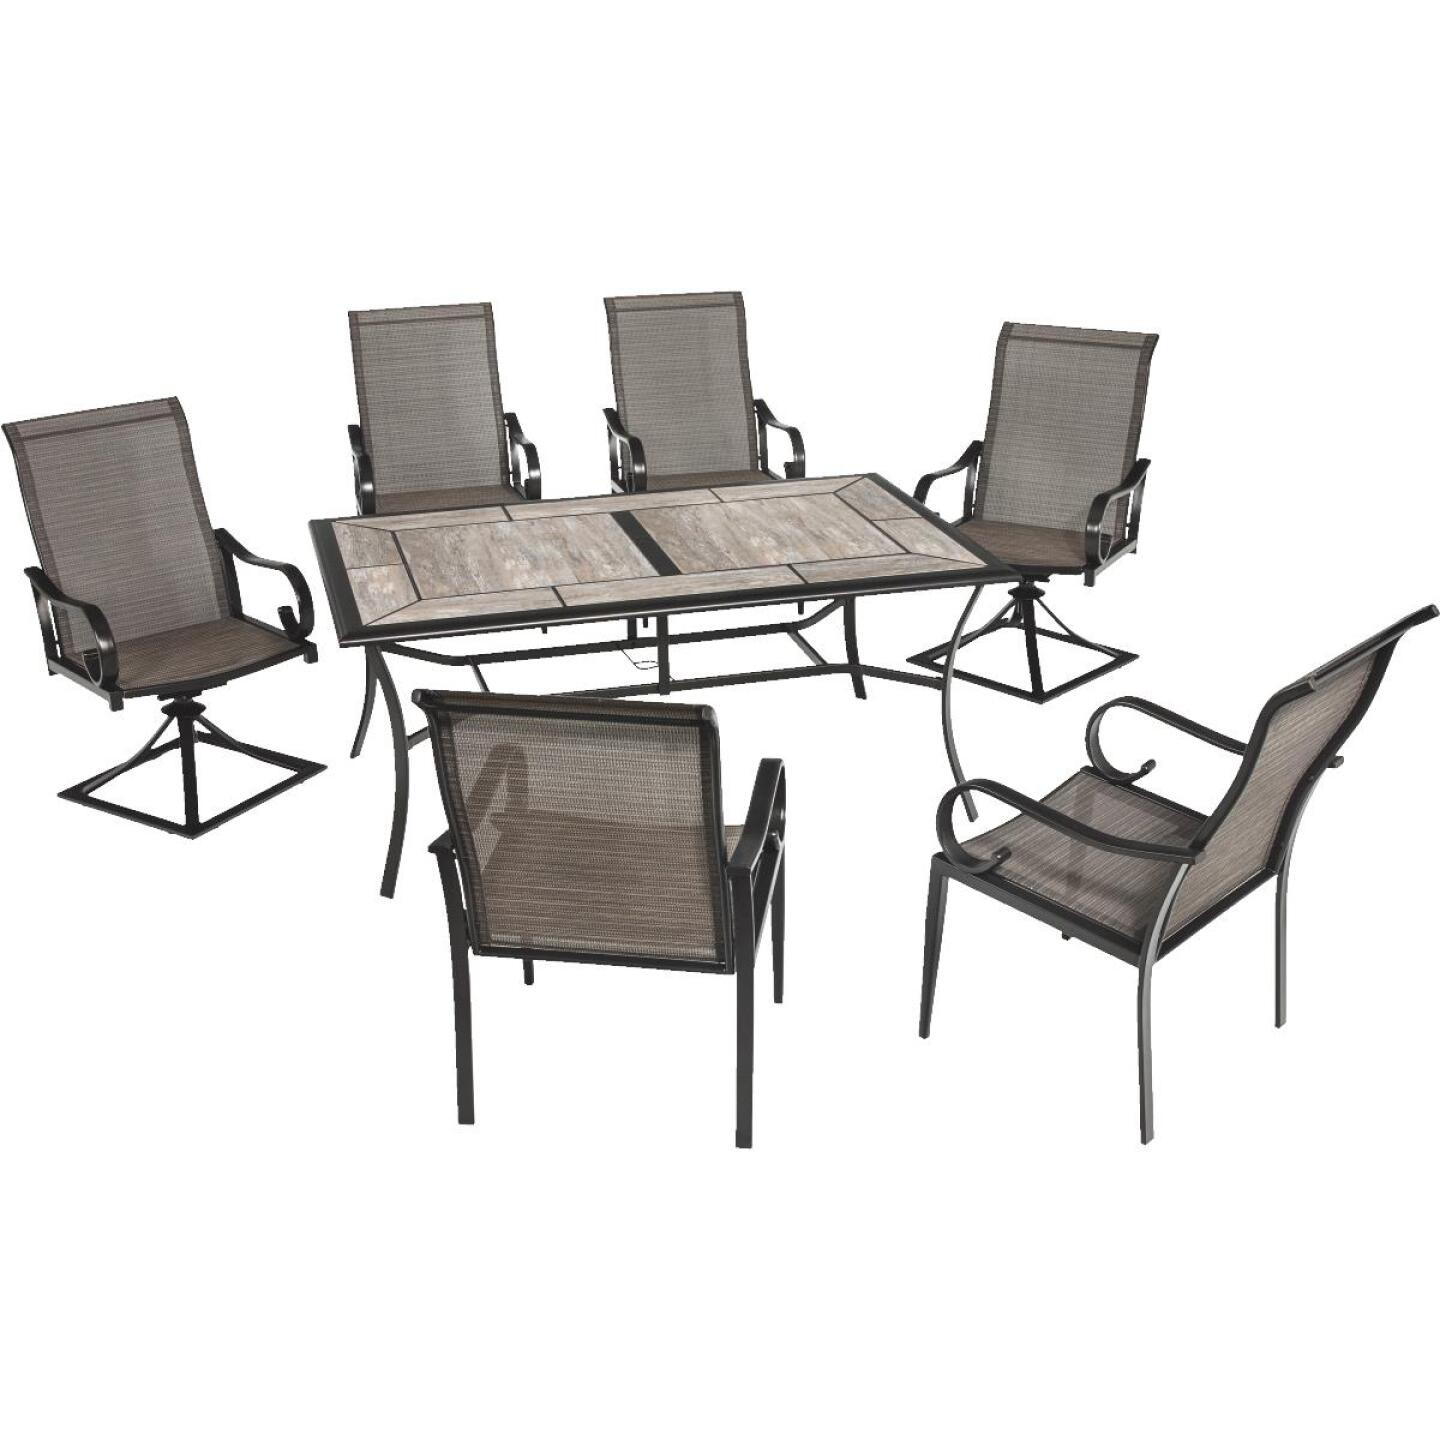 Outdoor Expressions Berkshire 7-Piece Dining Set Image 249